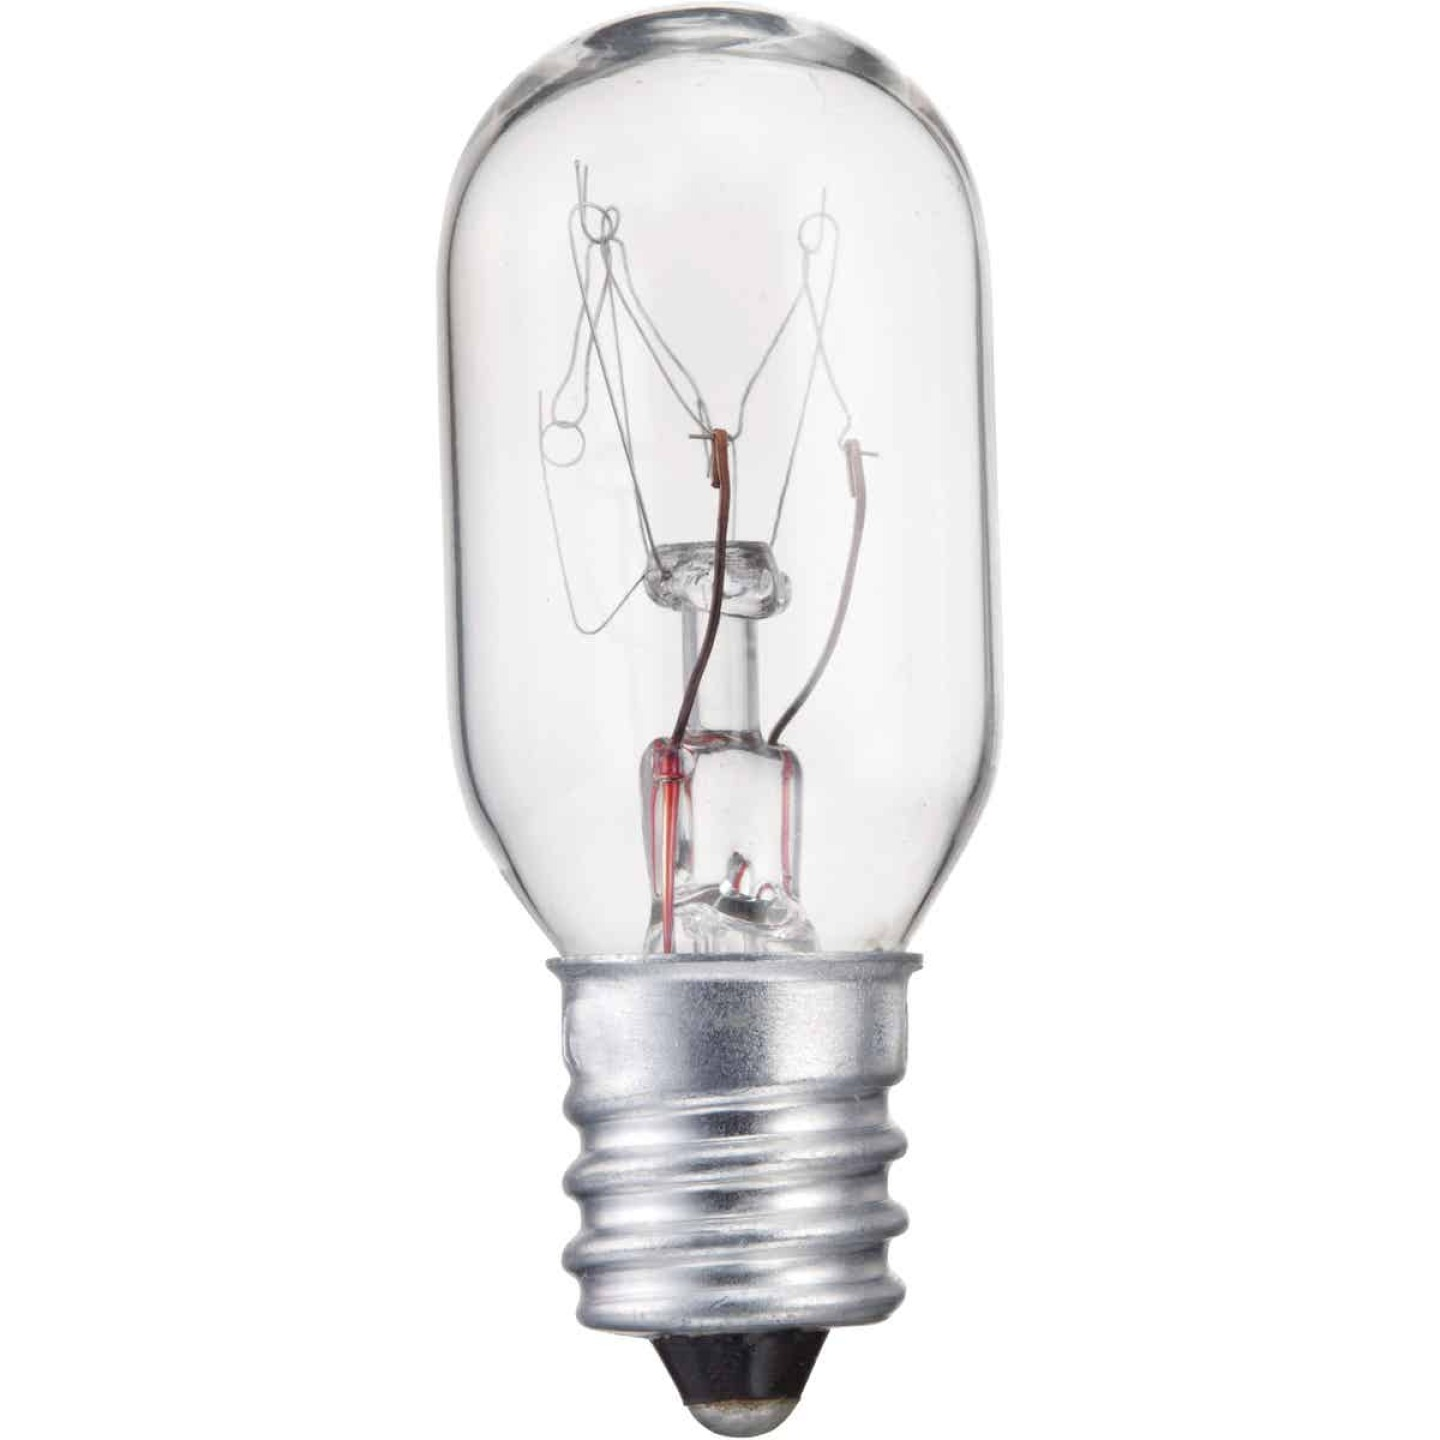 Philips 15W Clear Candelabra T6 Incandescent Exit Sign Light Bulb Image 1